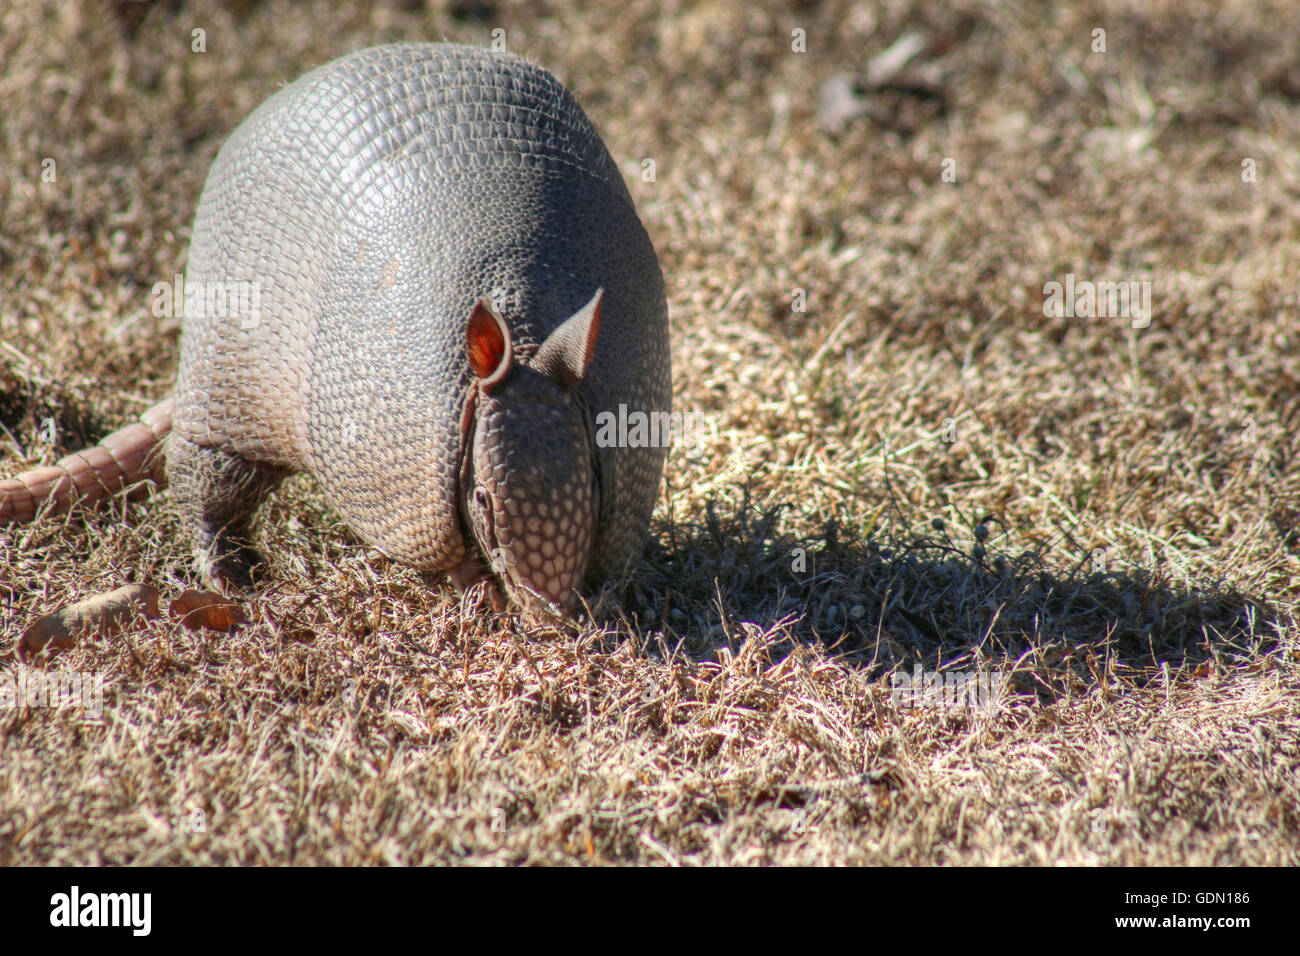 Armadillo looking for food - Stock Image